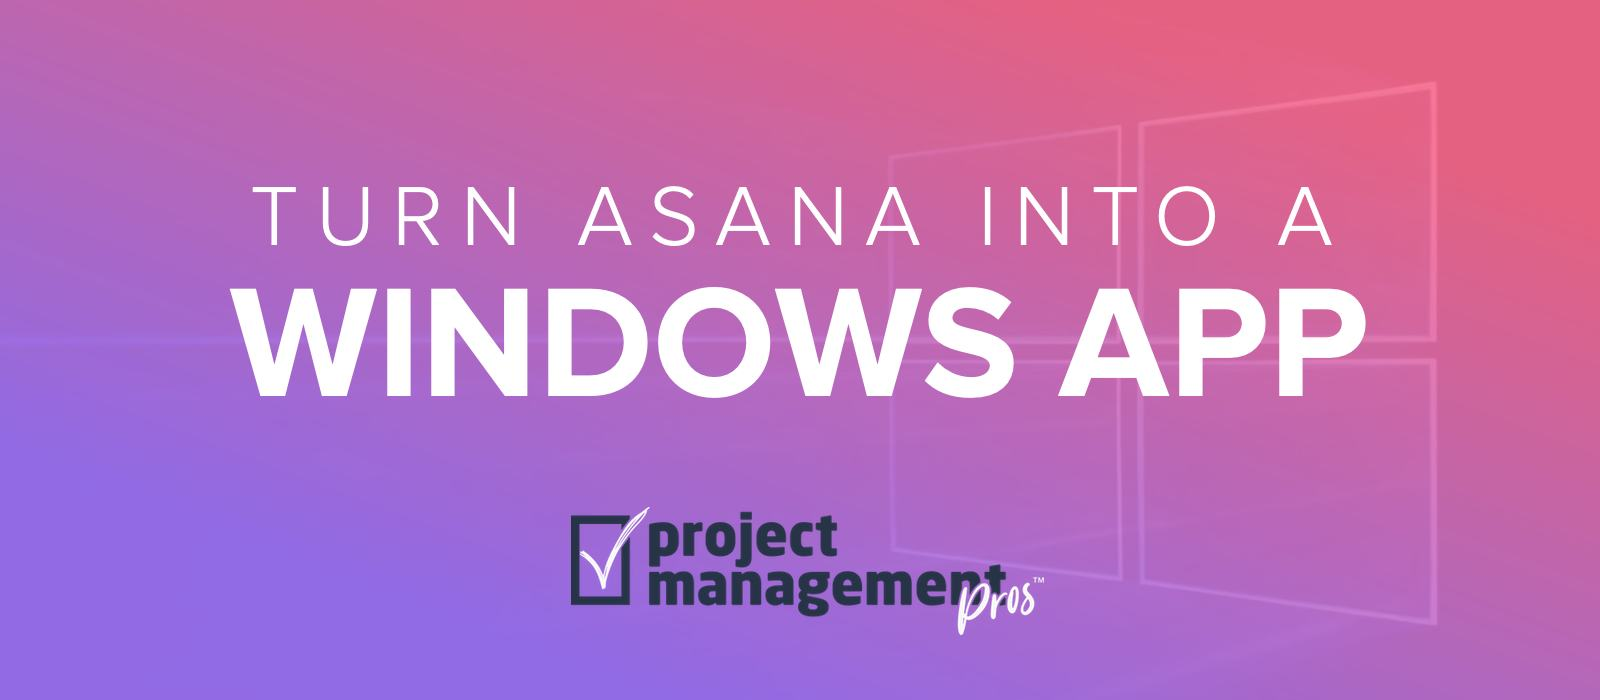 Turn Asana into a Windows desktop app